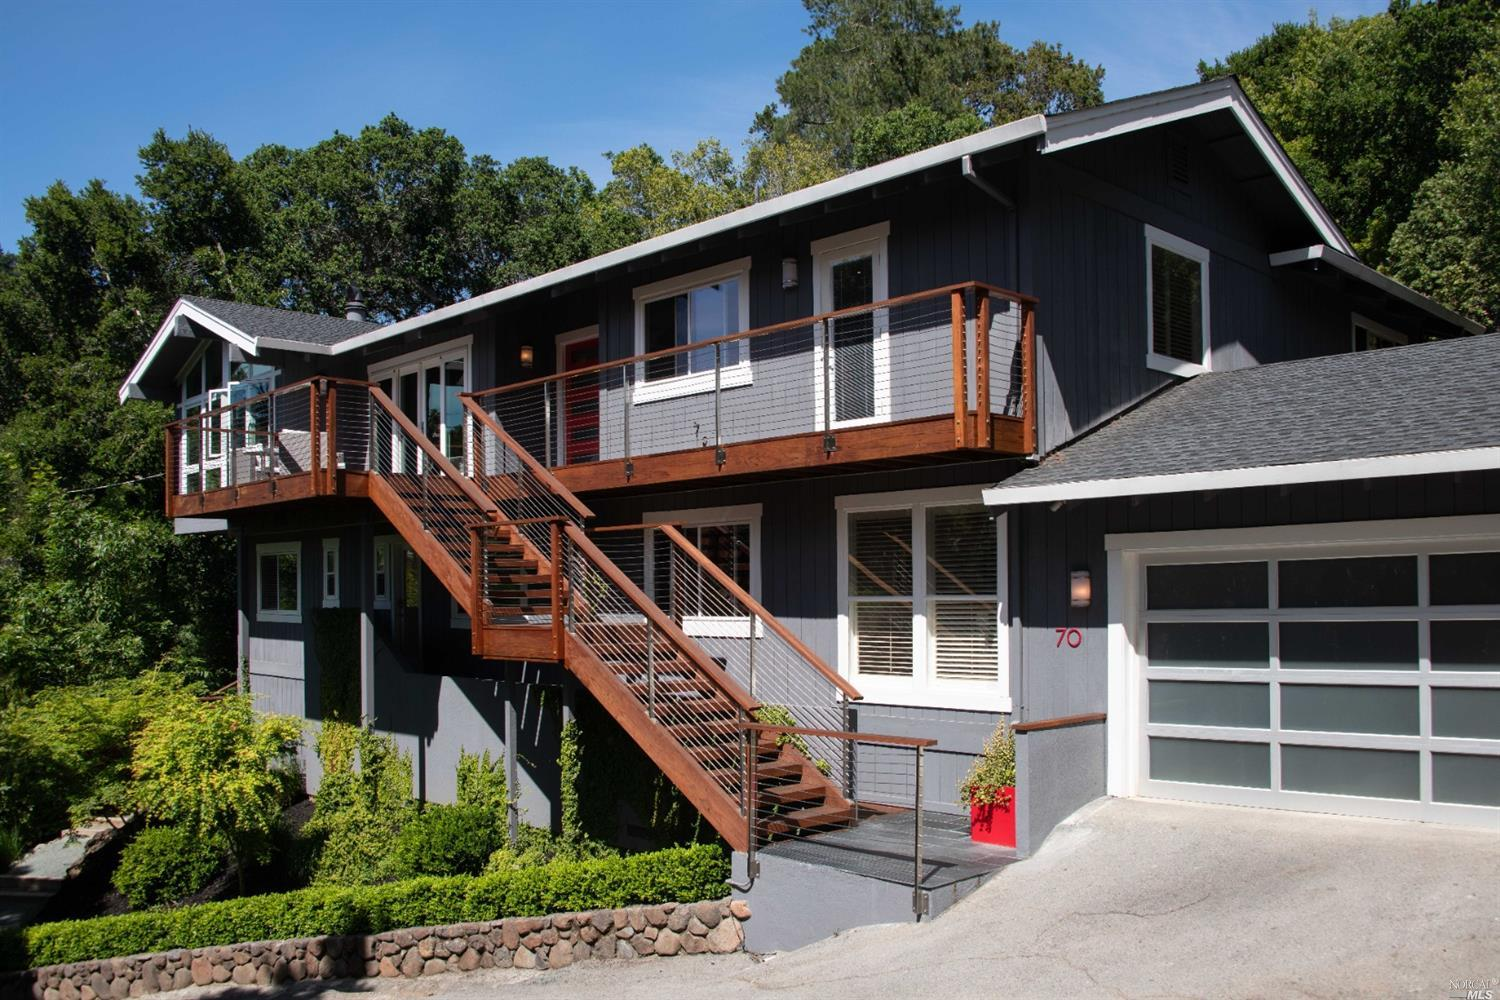 This remodeled home has a versatile floorplan w/ great flow and spacious living areas inside and out. On a private drive low in the hills, it's the perfect place to live & enjoy the best of Marin & the Bay Area, so close to shops, restaurants, outdoor rec' & commuter transportation! The main level consists of a formal entrance; a LR with a vaulted ceiling, a wall of windows & a fireplace; a formal DR; a modern, an open kitchen; a comfortable family room w/ fp; & a spacious primary bdrm suite with 2 walk-in closets. The lower level consists of 2 large bdrms, a hall bath, a laundry room with storage, and a spacious, versatile, 4th bdrm suite that has a kitchenette, its own washer/dryer + a separate entrance. There are redwood decks off the front & back of the house. The property is landscaped with mature trees, foliage & pathways, a hot tub, a raised vegetable garden + places for play. Attached, 2 car garage + 4 private pkng spaces. Kentfield Schools.